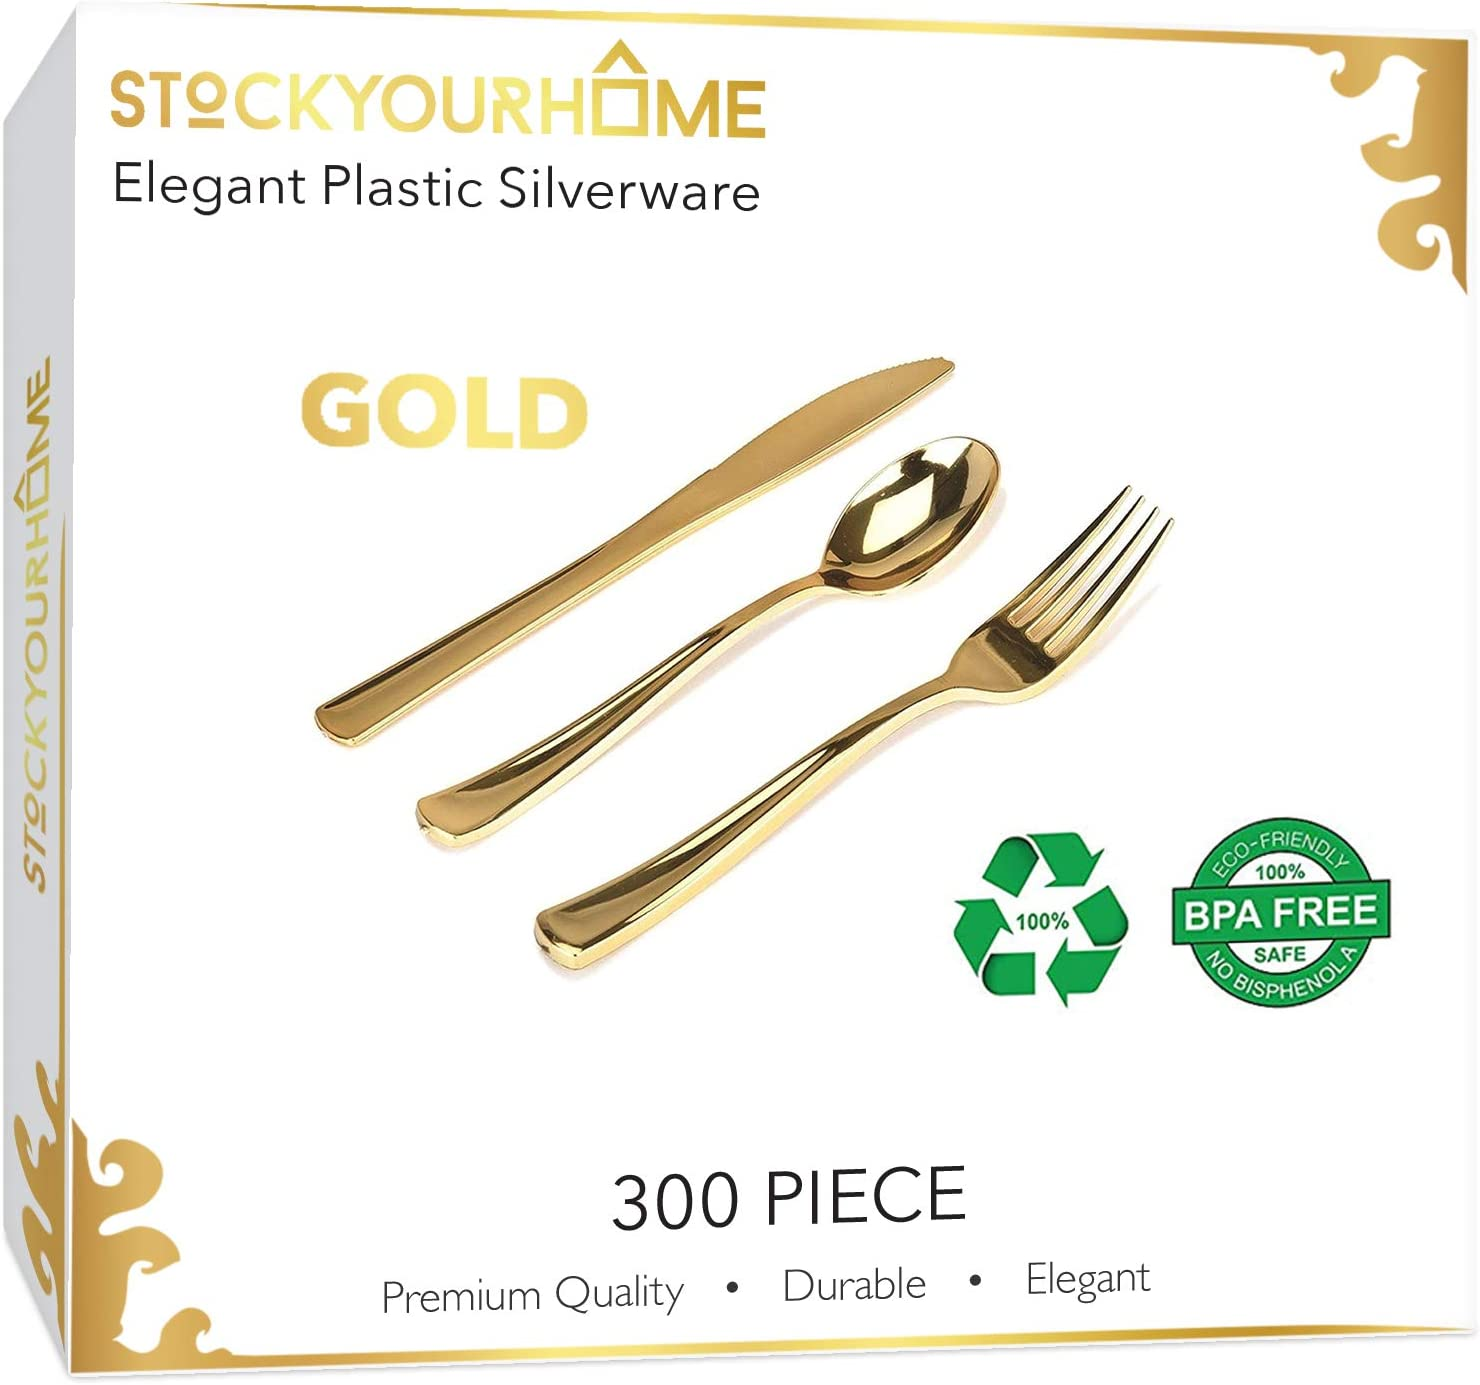 300 Gold Plastic Silverware - Gold Disposable Silverware - Gold Plastic Cutlery - Gold Plastic Utensils - Gold Party Utensils – 100 Gold Plastic Forks, 100 Gold Plastic Spoons, 100 Gold Plastic Knives